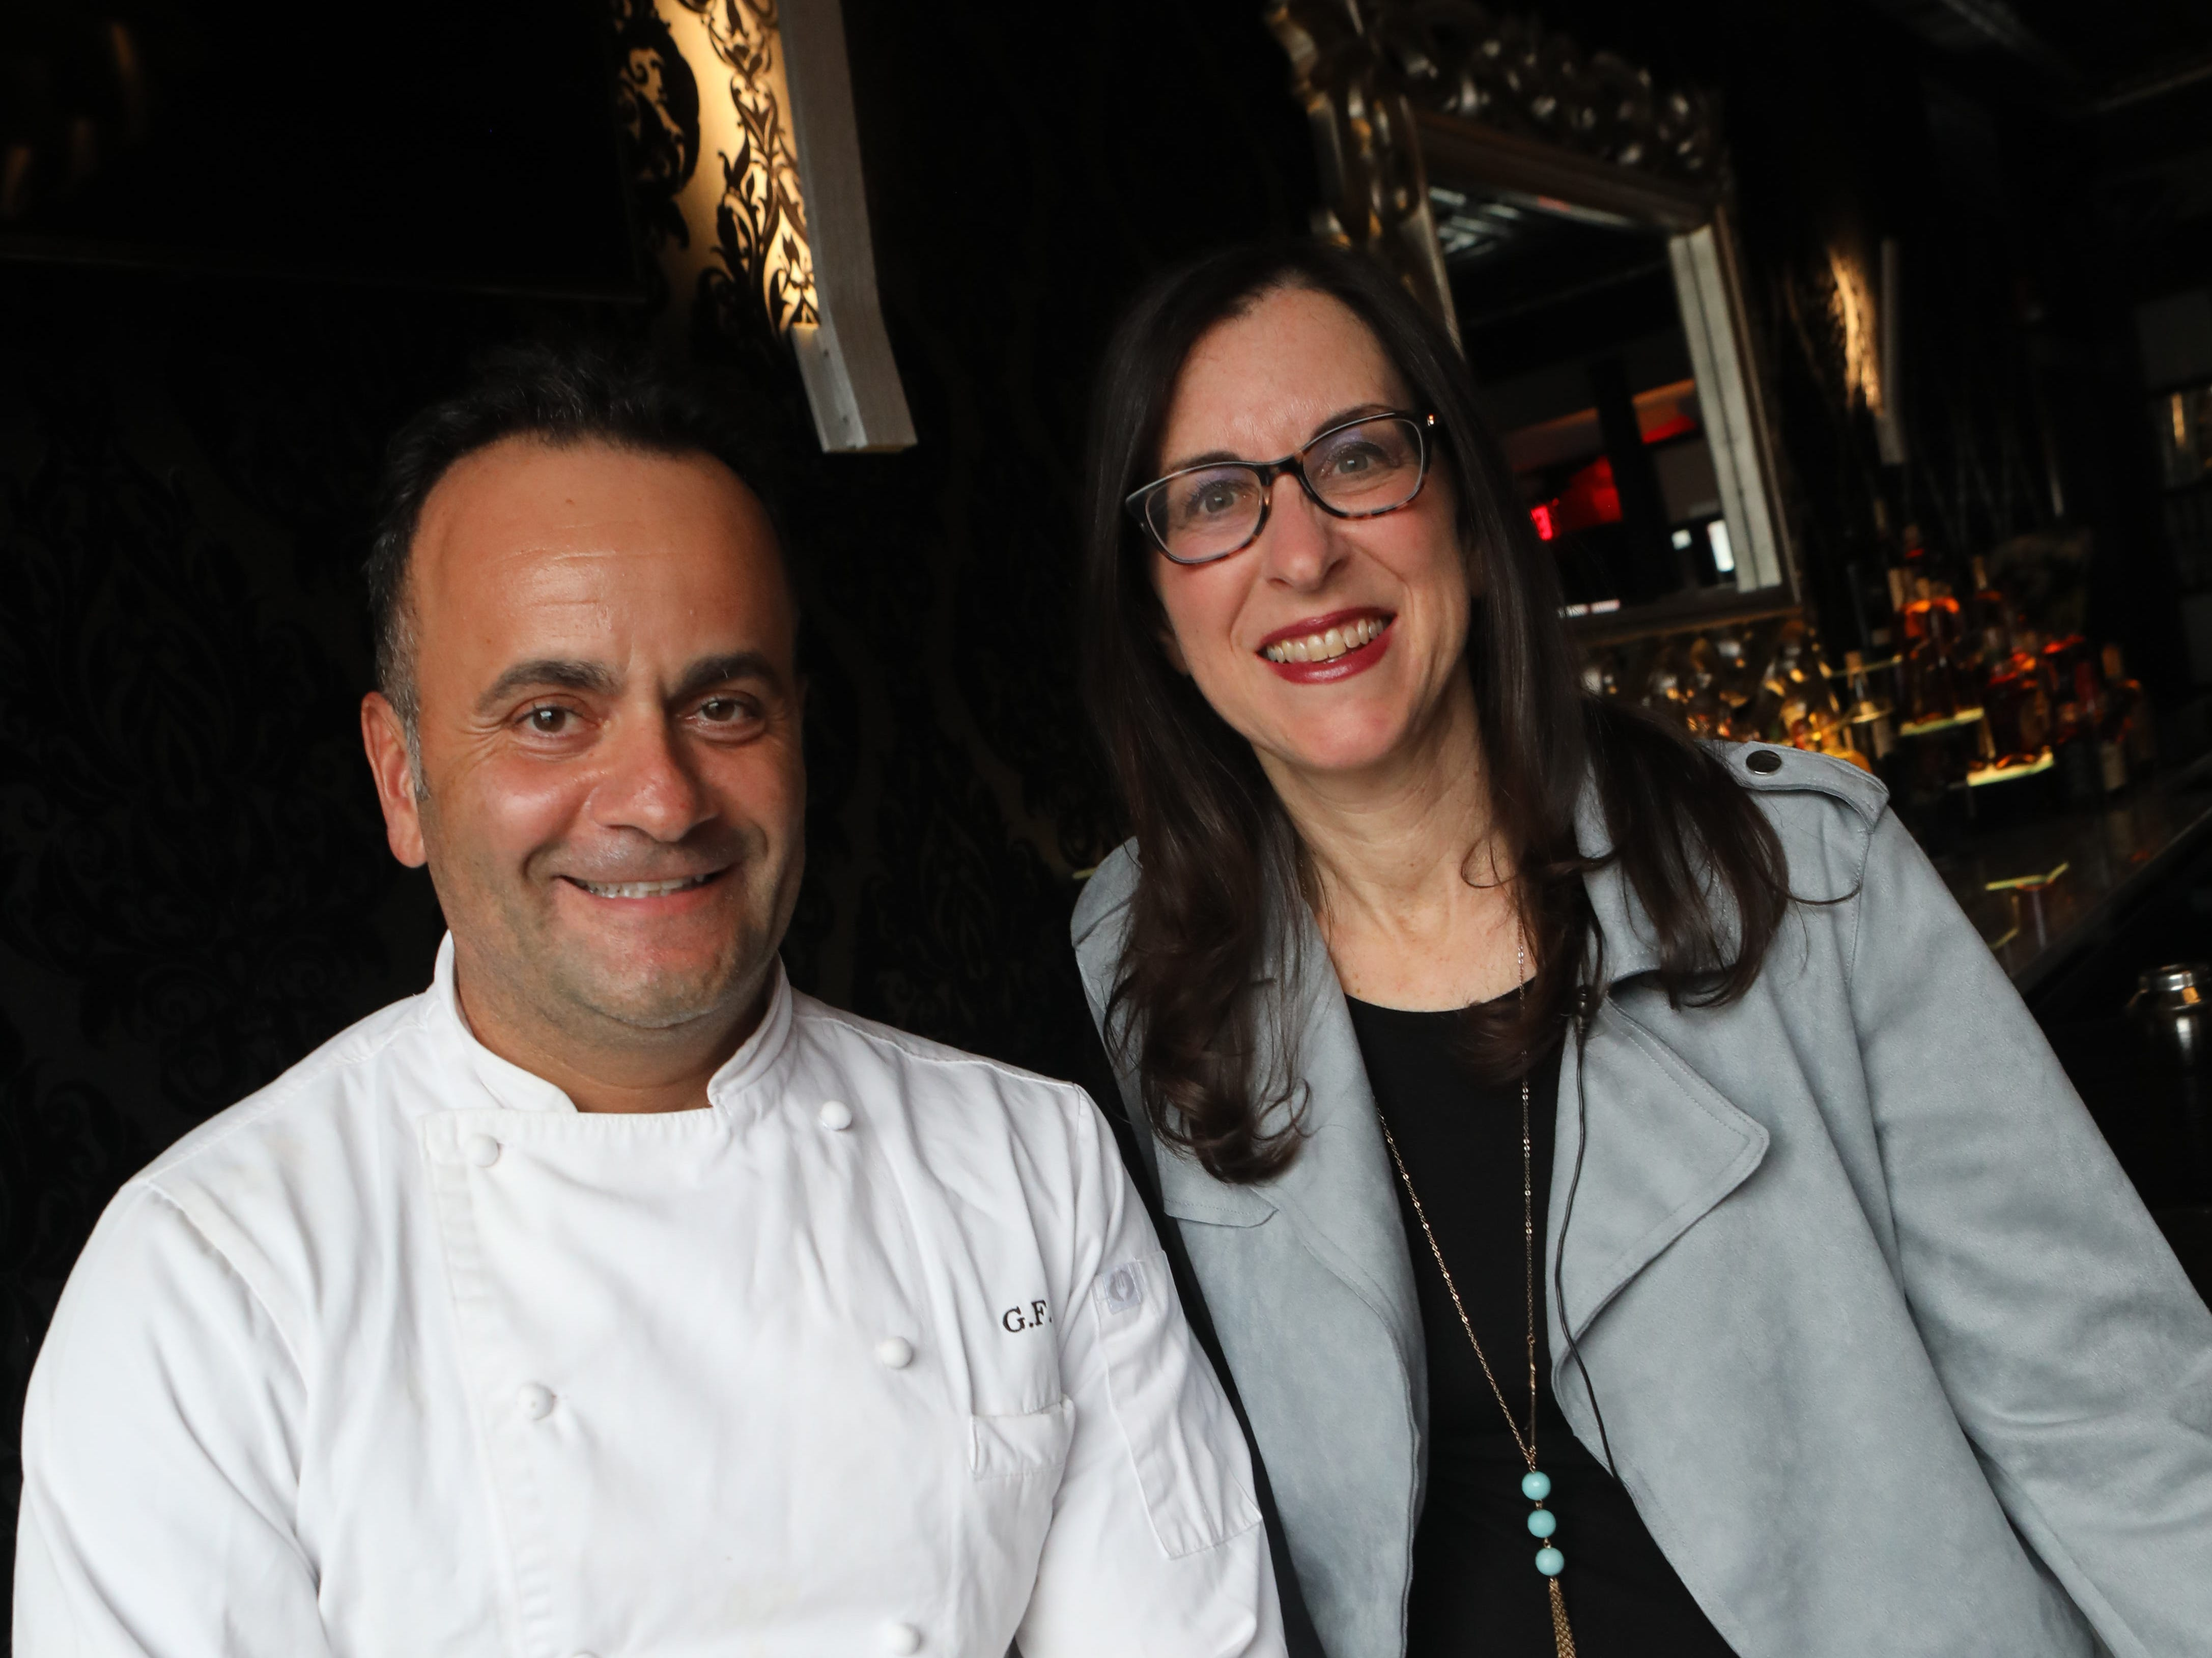 """From left, Jeanne Muchnick is photographed with Chef Giuseppe Fanelli before her """"Dinner with Jeanne"""" at Tredici Social in Bronxville April 9, 2019."""